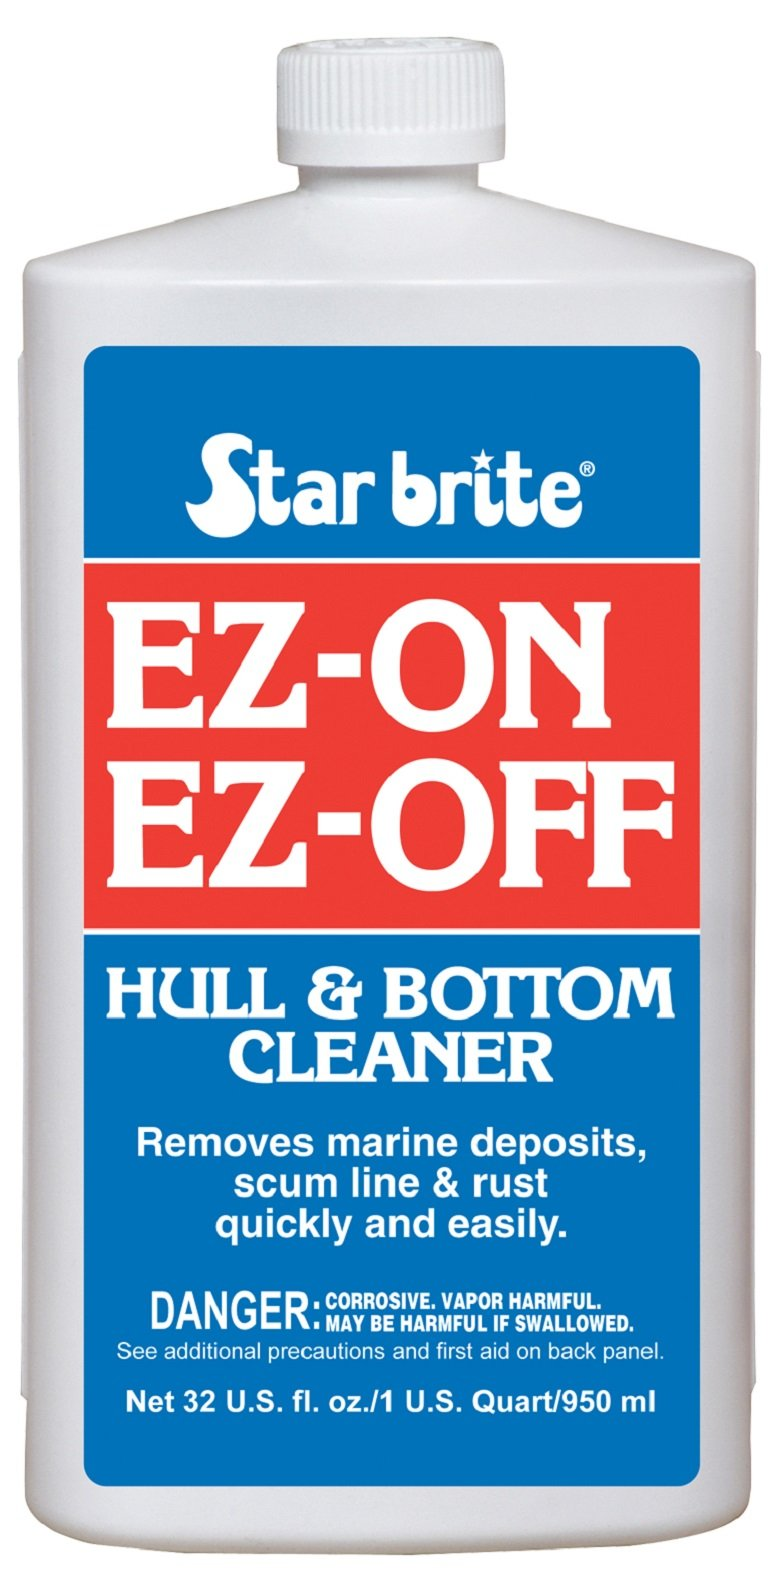 Star brite EZ-ON EZ-OFF Hull & Bottom Cleaner 32 oz by Star Brite